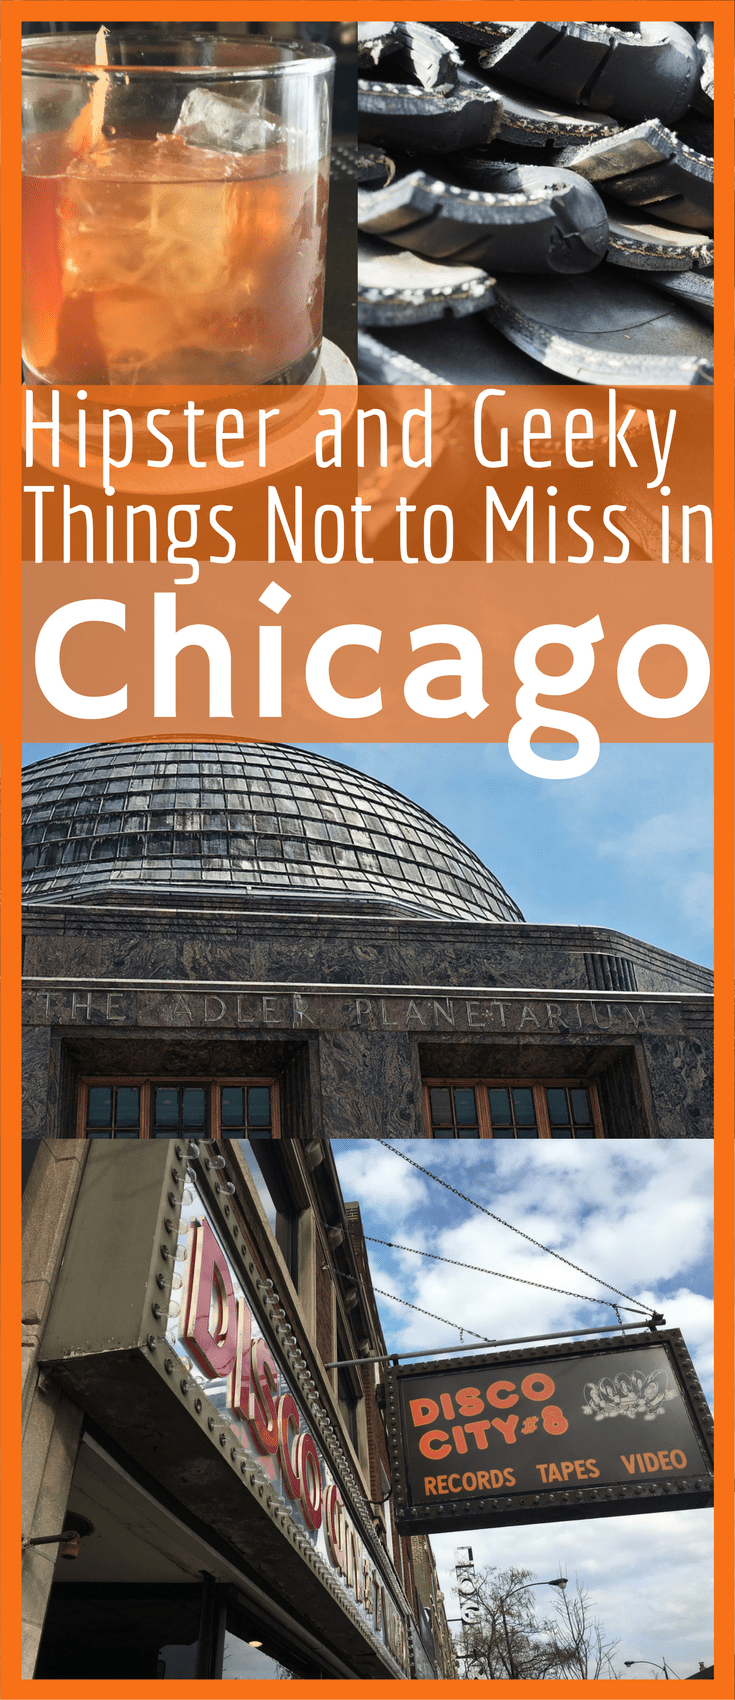 Explore off the beaten path Chicago, U.S.A with this guide inspired by locals. Find the best hipster and geeky things to do in Chicago by exploring markets, brunch spots, cocktail bars, museums, comic stores and boutique hotels in with this hipster and geek guide to Chicago.